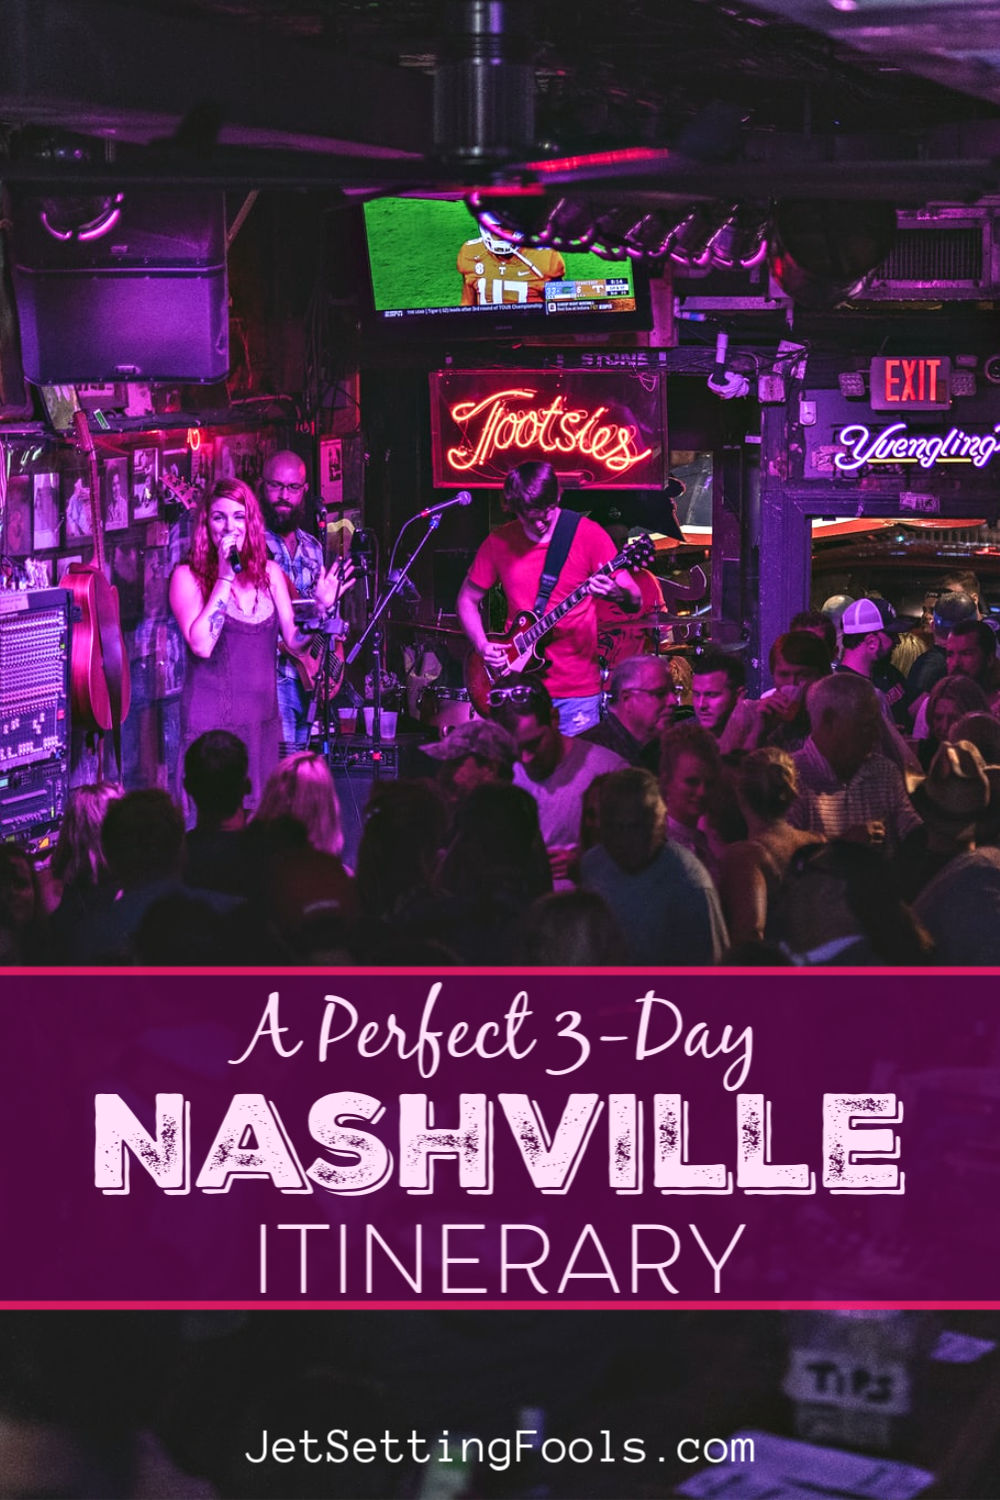 Nashville Itinerary by JetSettingFools.com